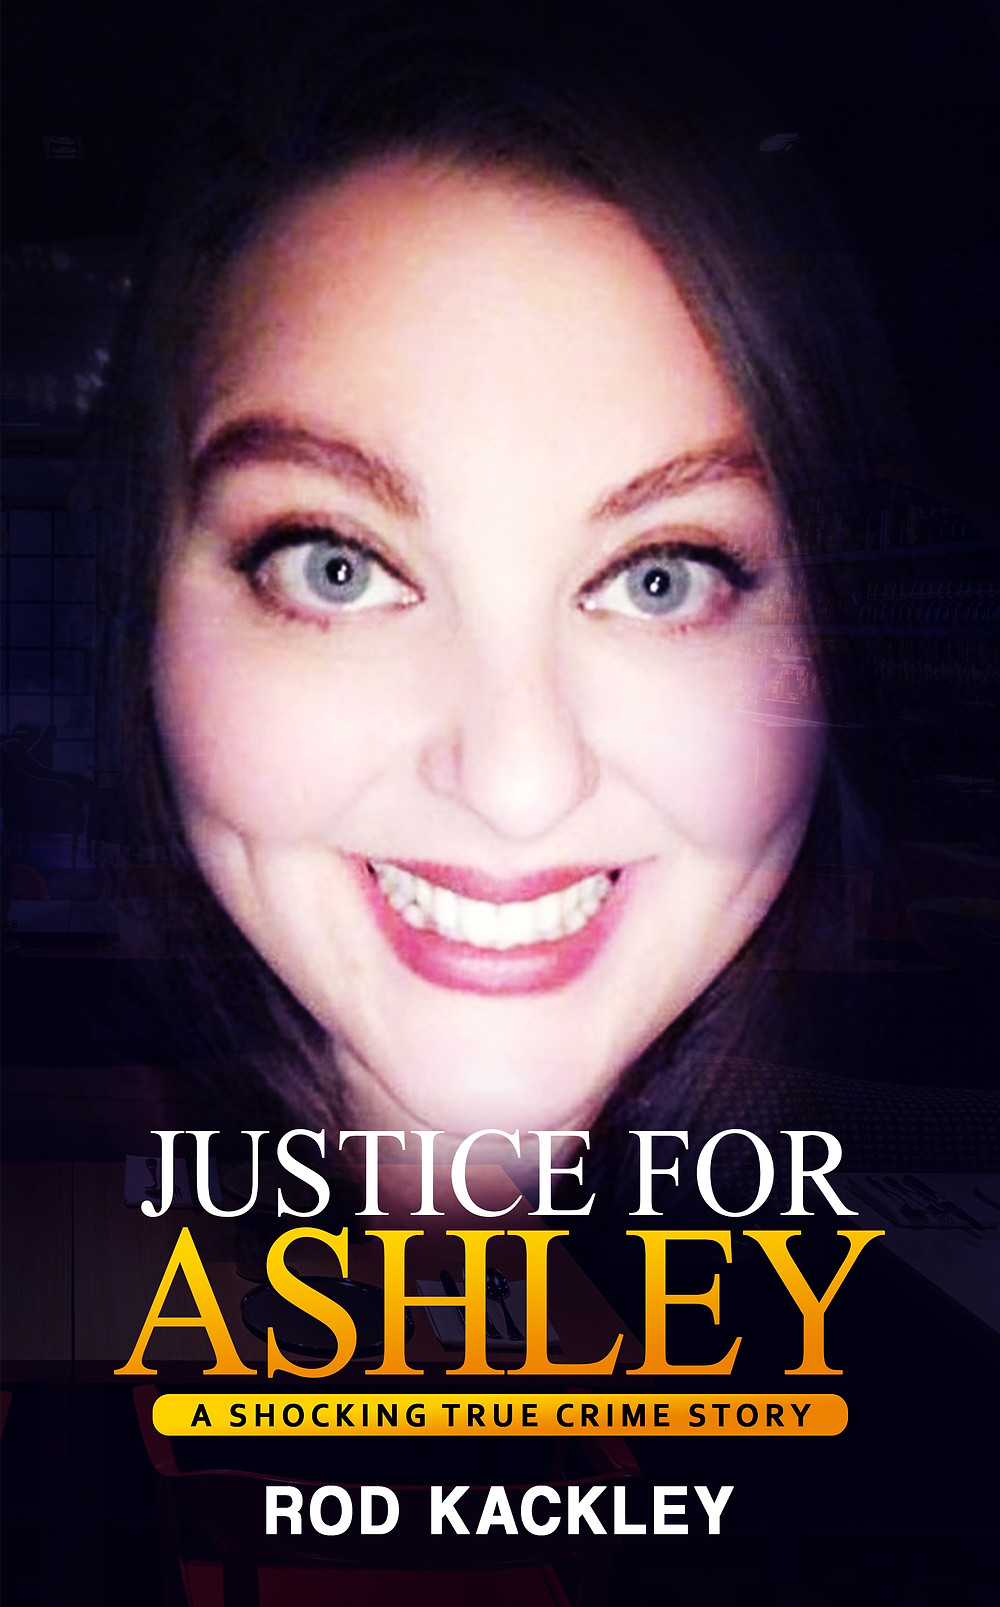 #Justice For Ashley A Shocking True Crime Story by Rod Kackley